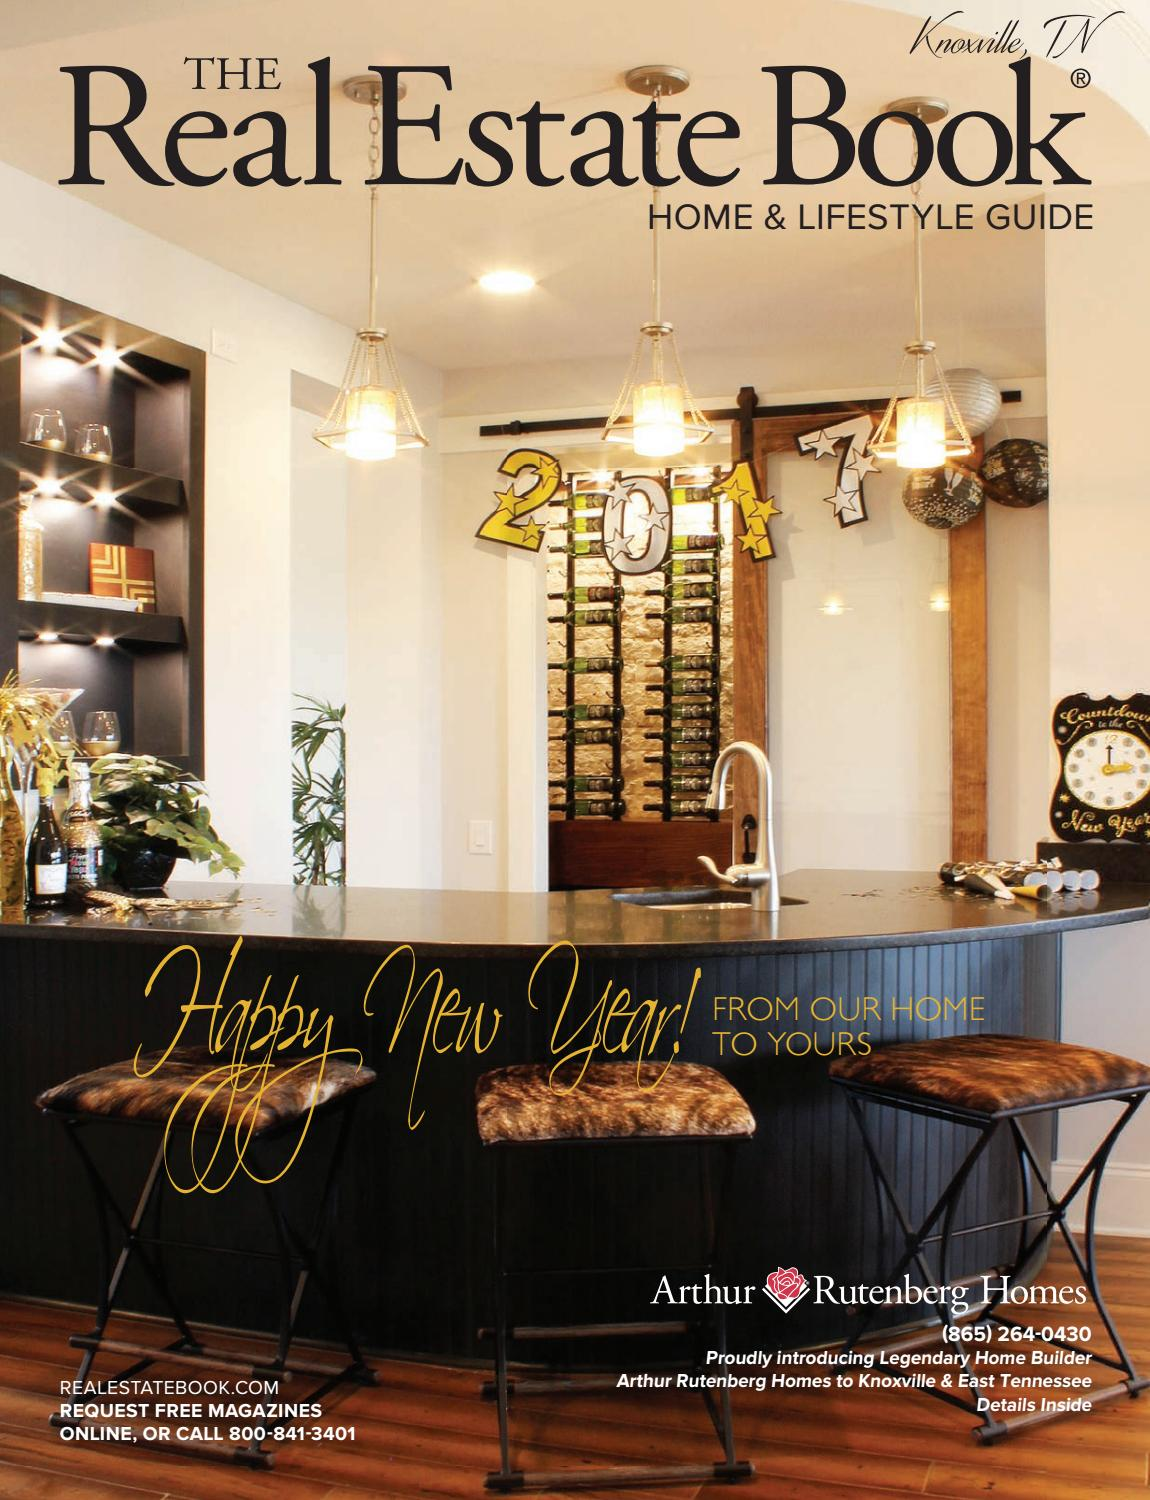 The Real Estate Book Home Lifestyle Guide Knoxville Tn By Dflydesigns Issuu